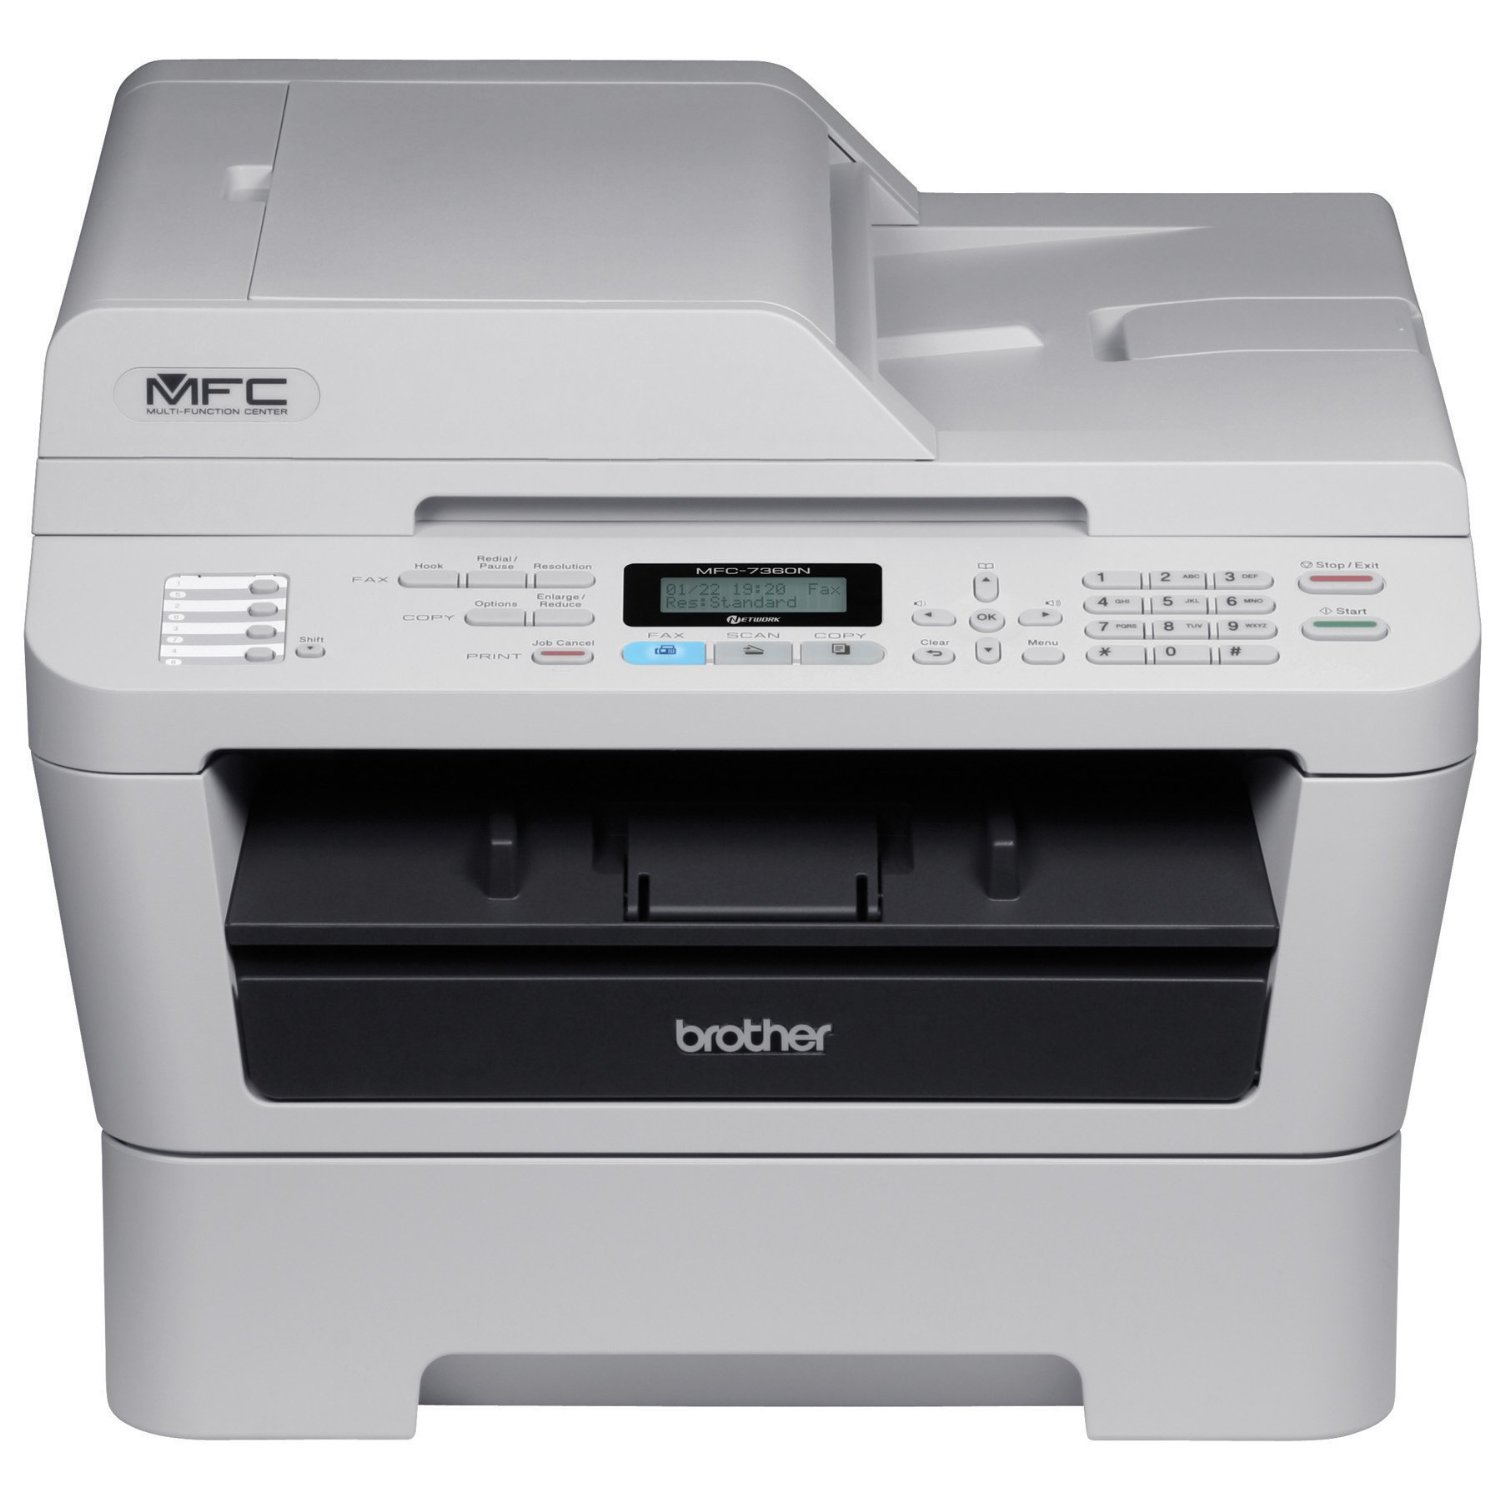 Brother Mfc 7360n All In One Printer Techtack Lessons